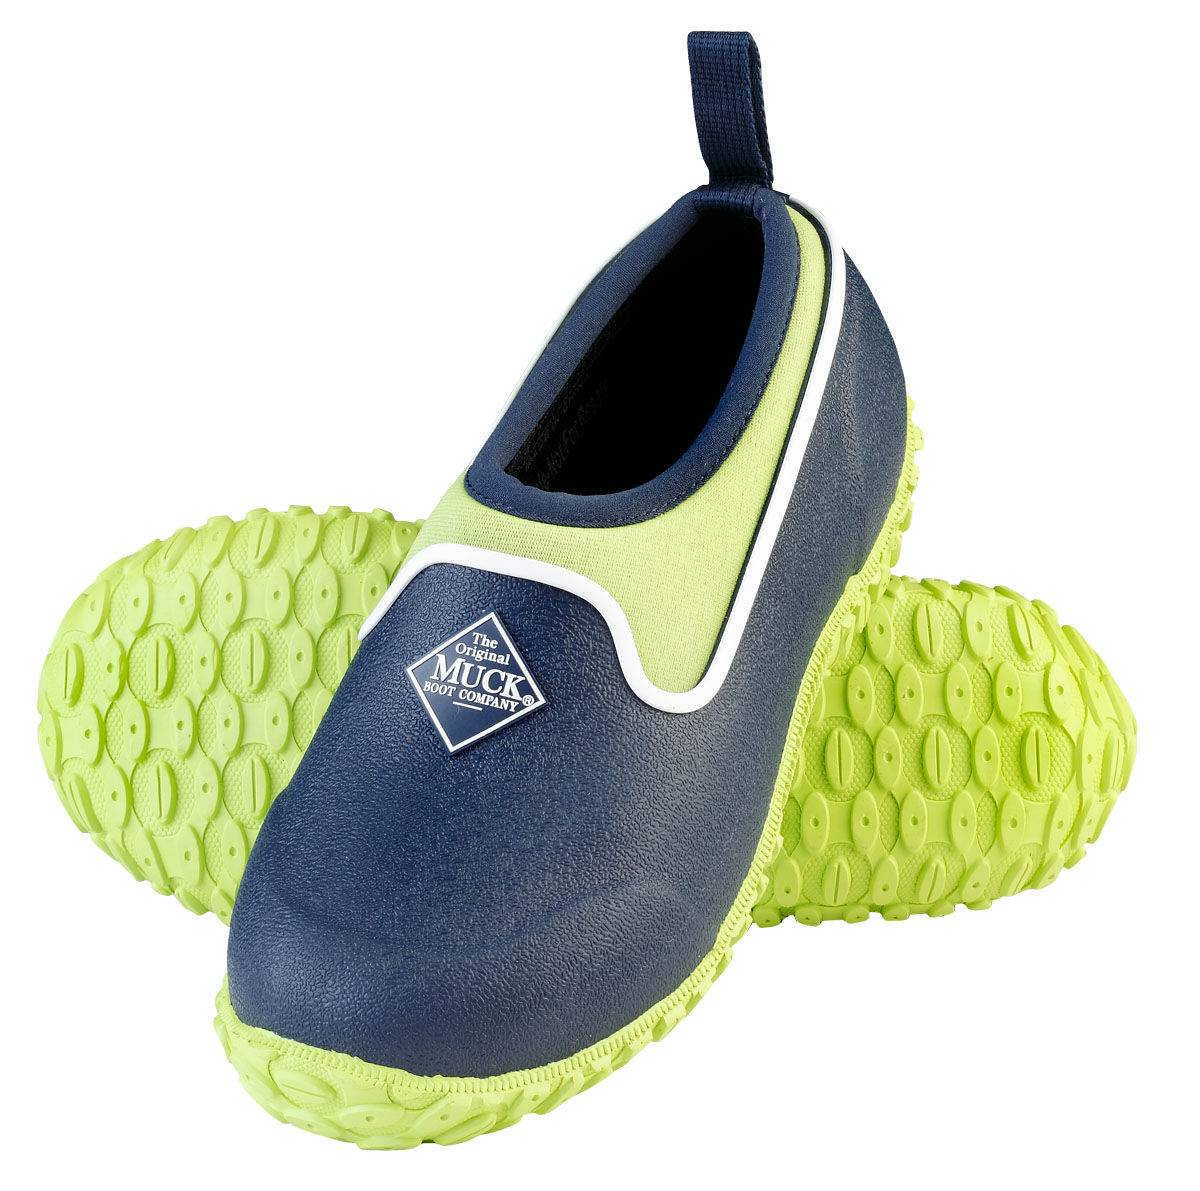 Muck Boots Muckster II Low Boots - Kids - Navy Lime